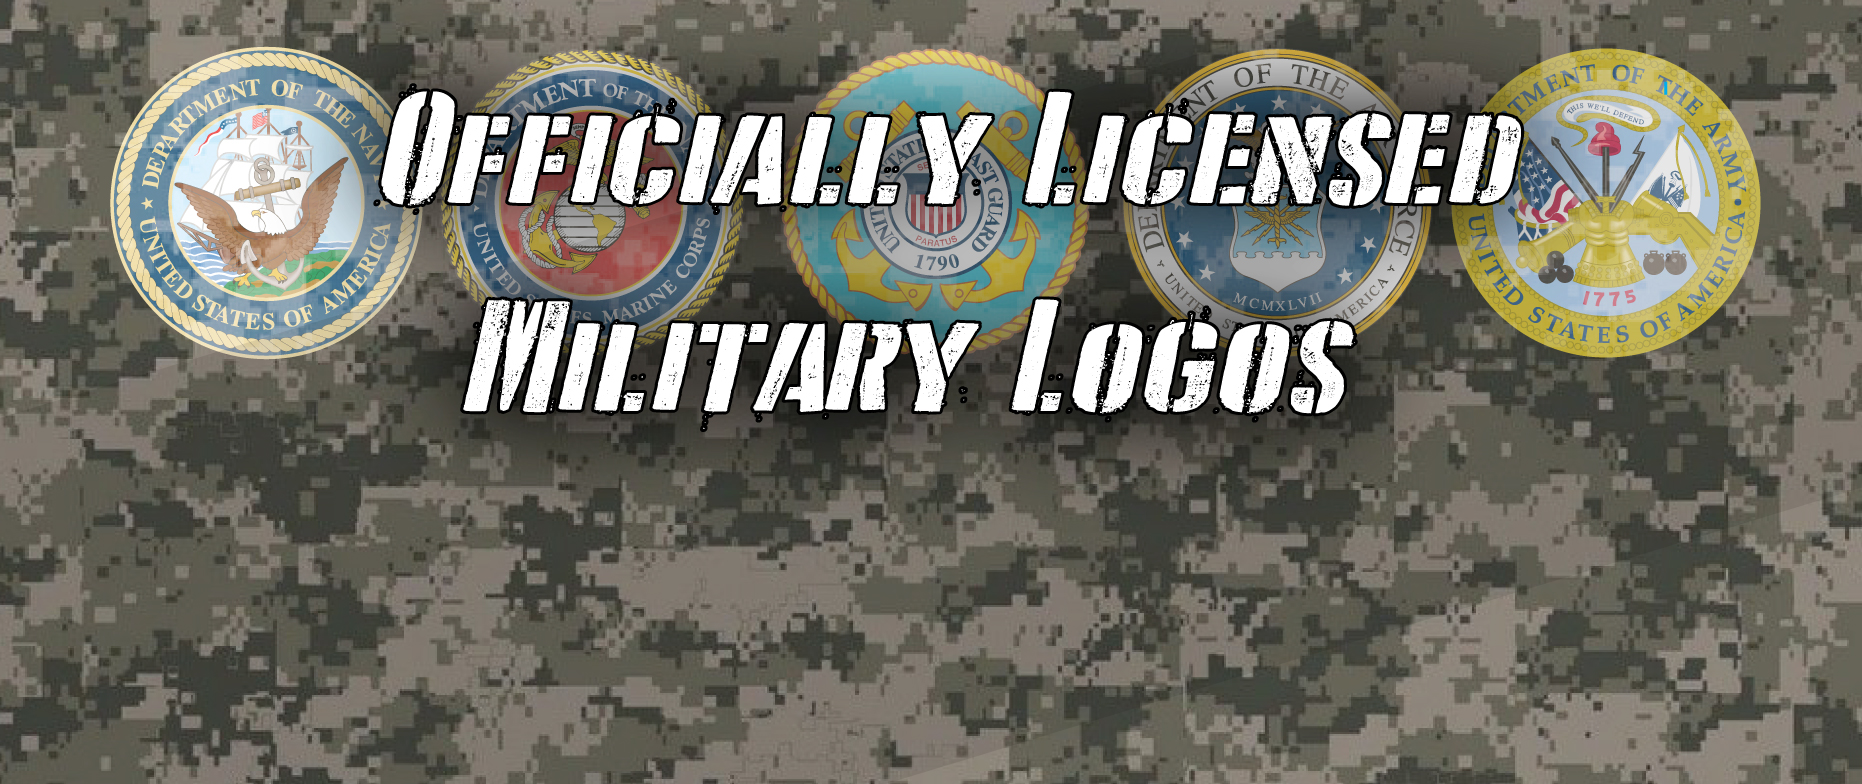 United States Military Branches | US Military | Logos